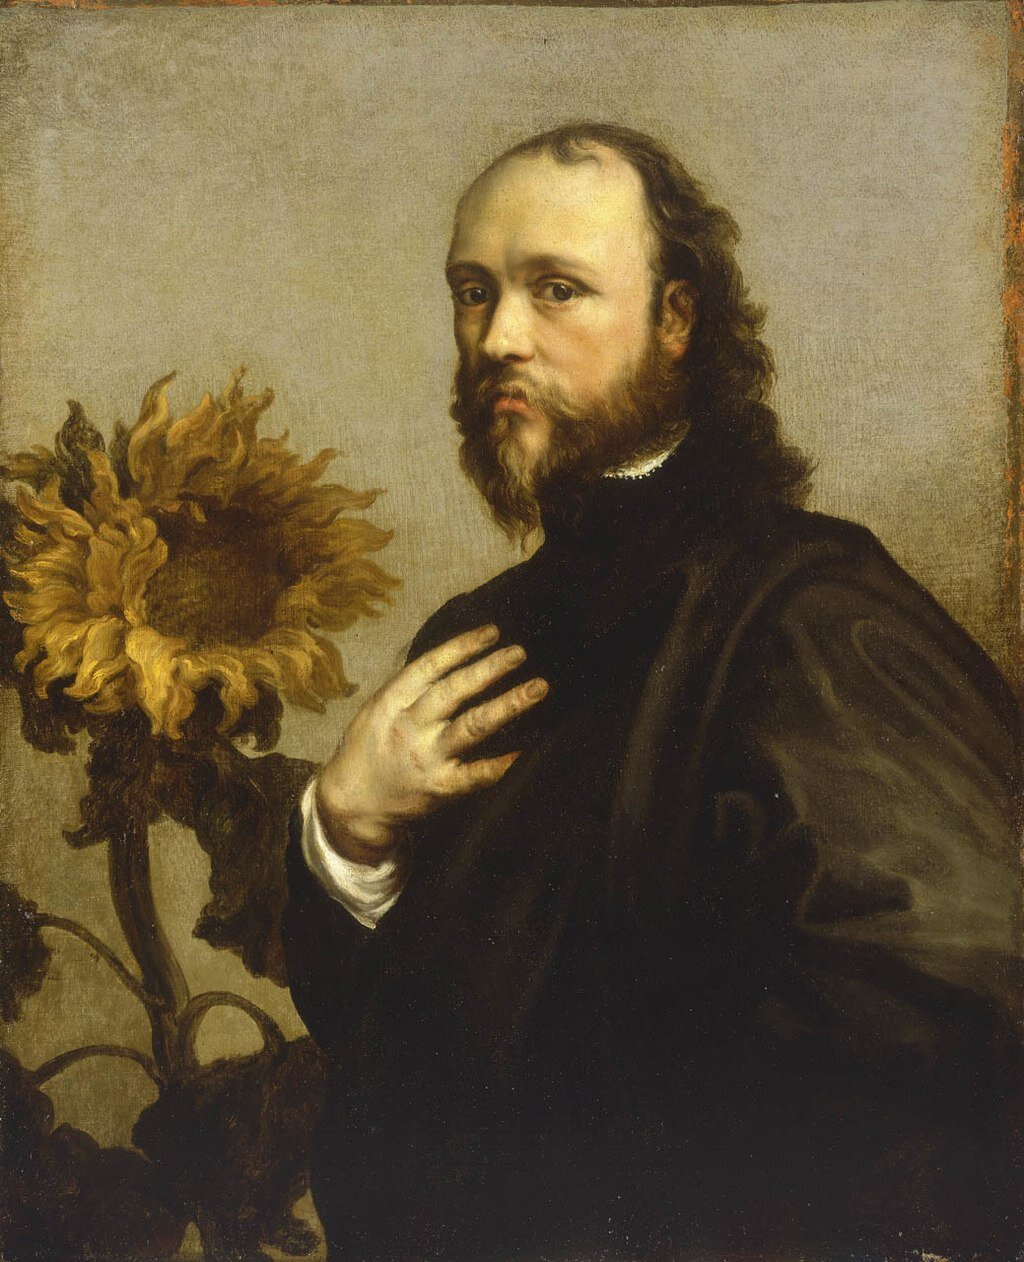 Portrait of Sir Kenelm Digby with a Sunflower by Anthony Van Dyck